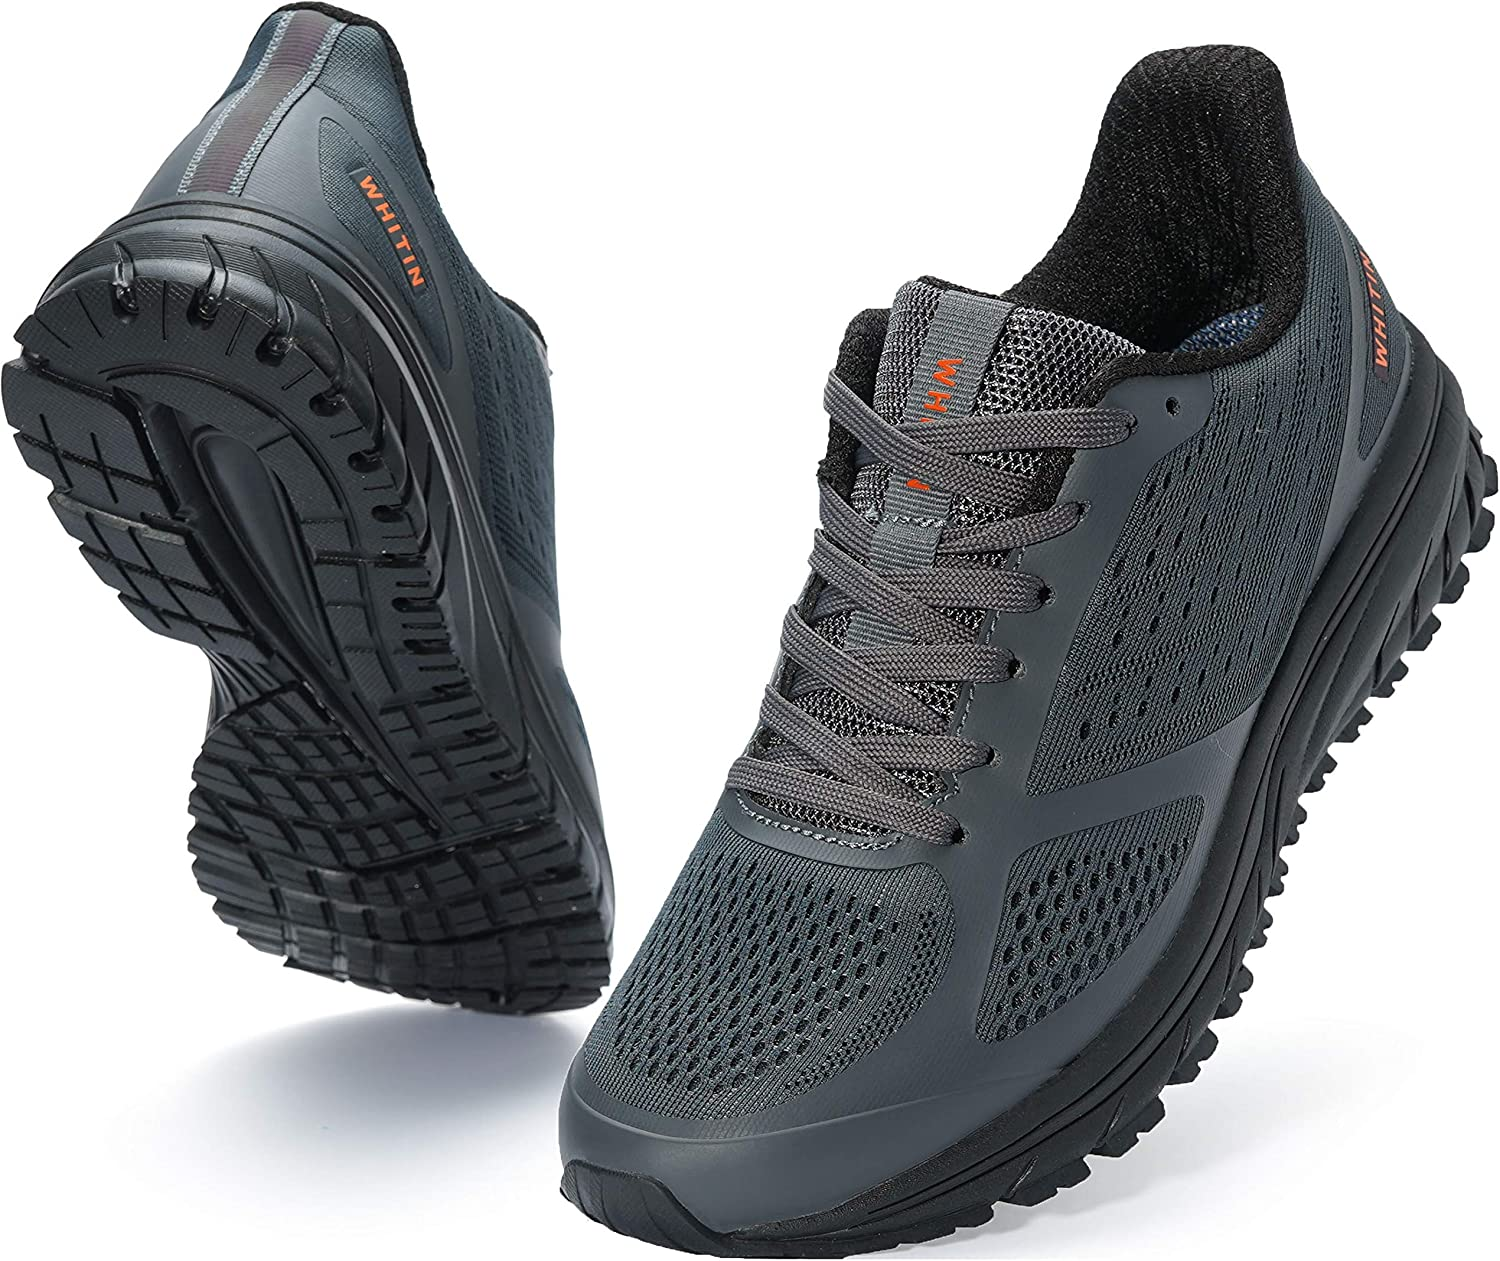 Reservation Max 47% OFF Joomra Men's Supportive Running Shoes Cushioned Athl Lightweight